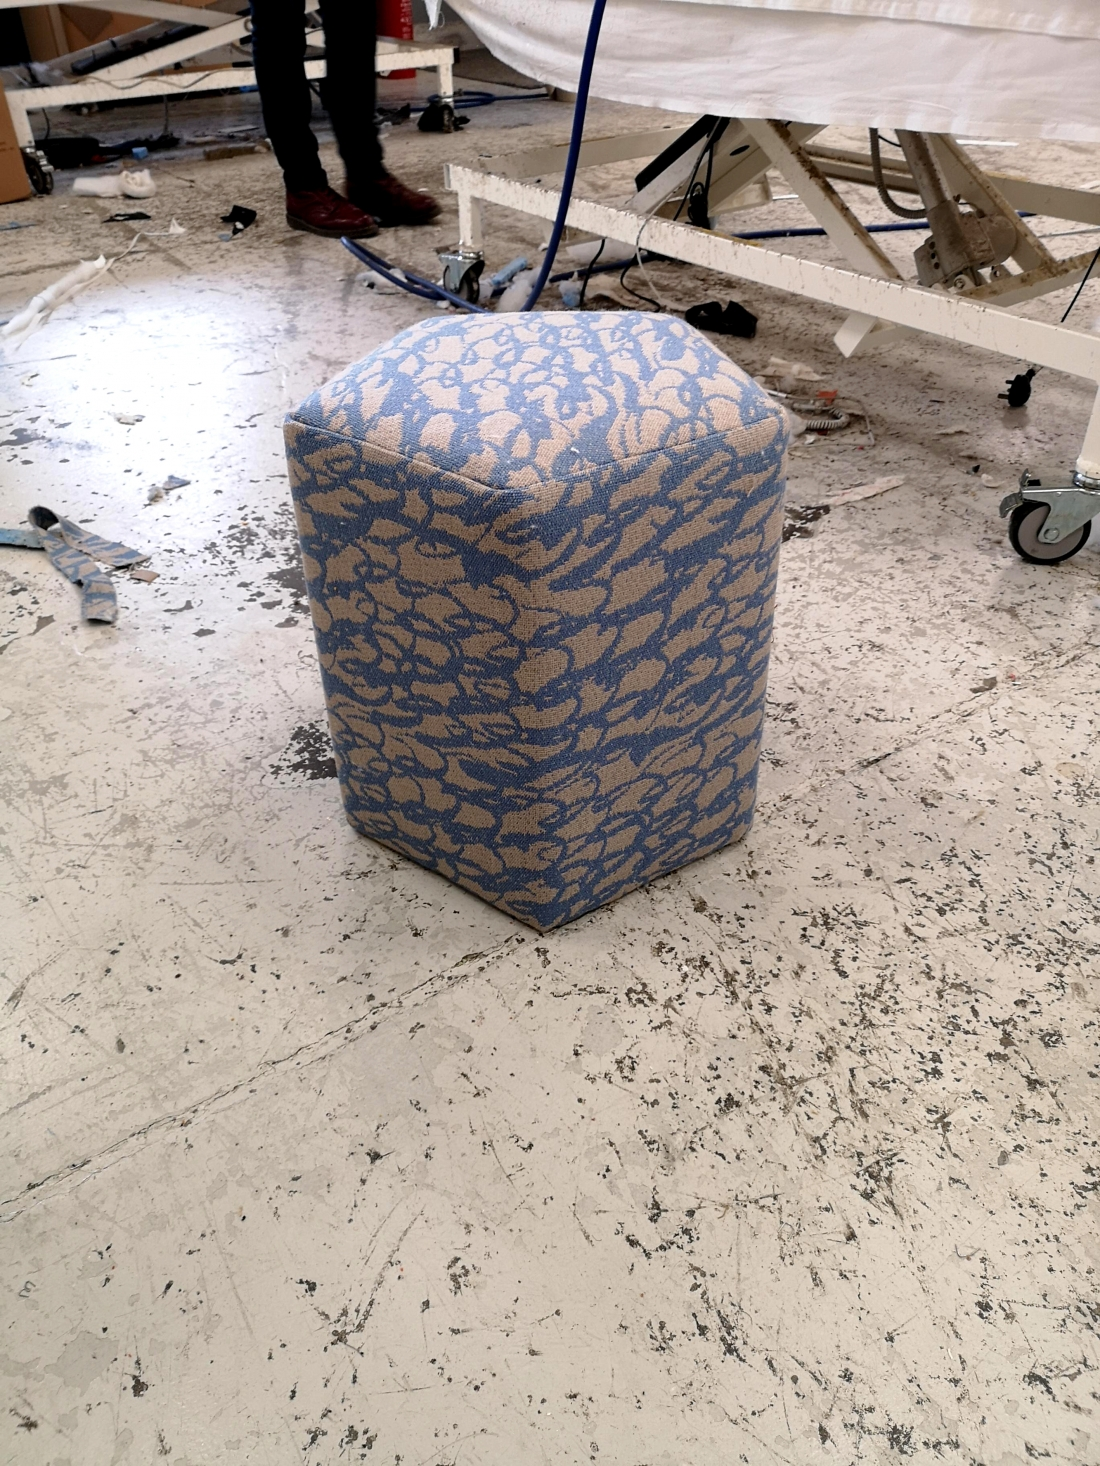 Image by Ella Doran - First prototype upholstered stool from Coakley Cox